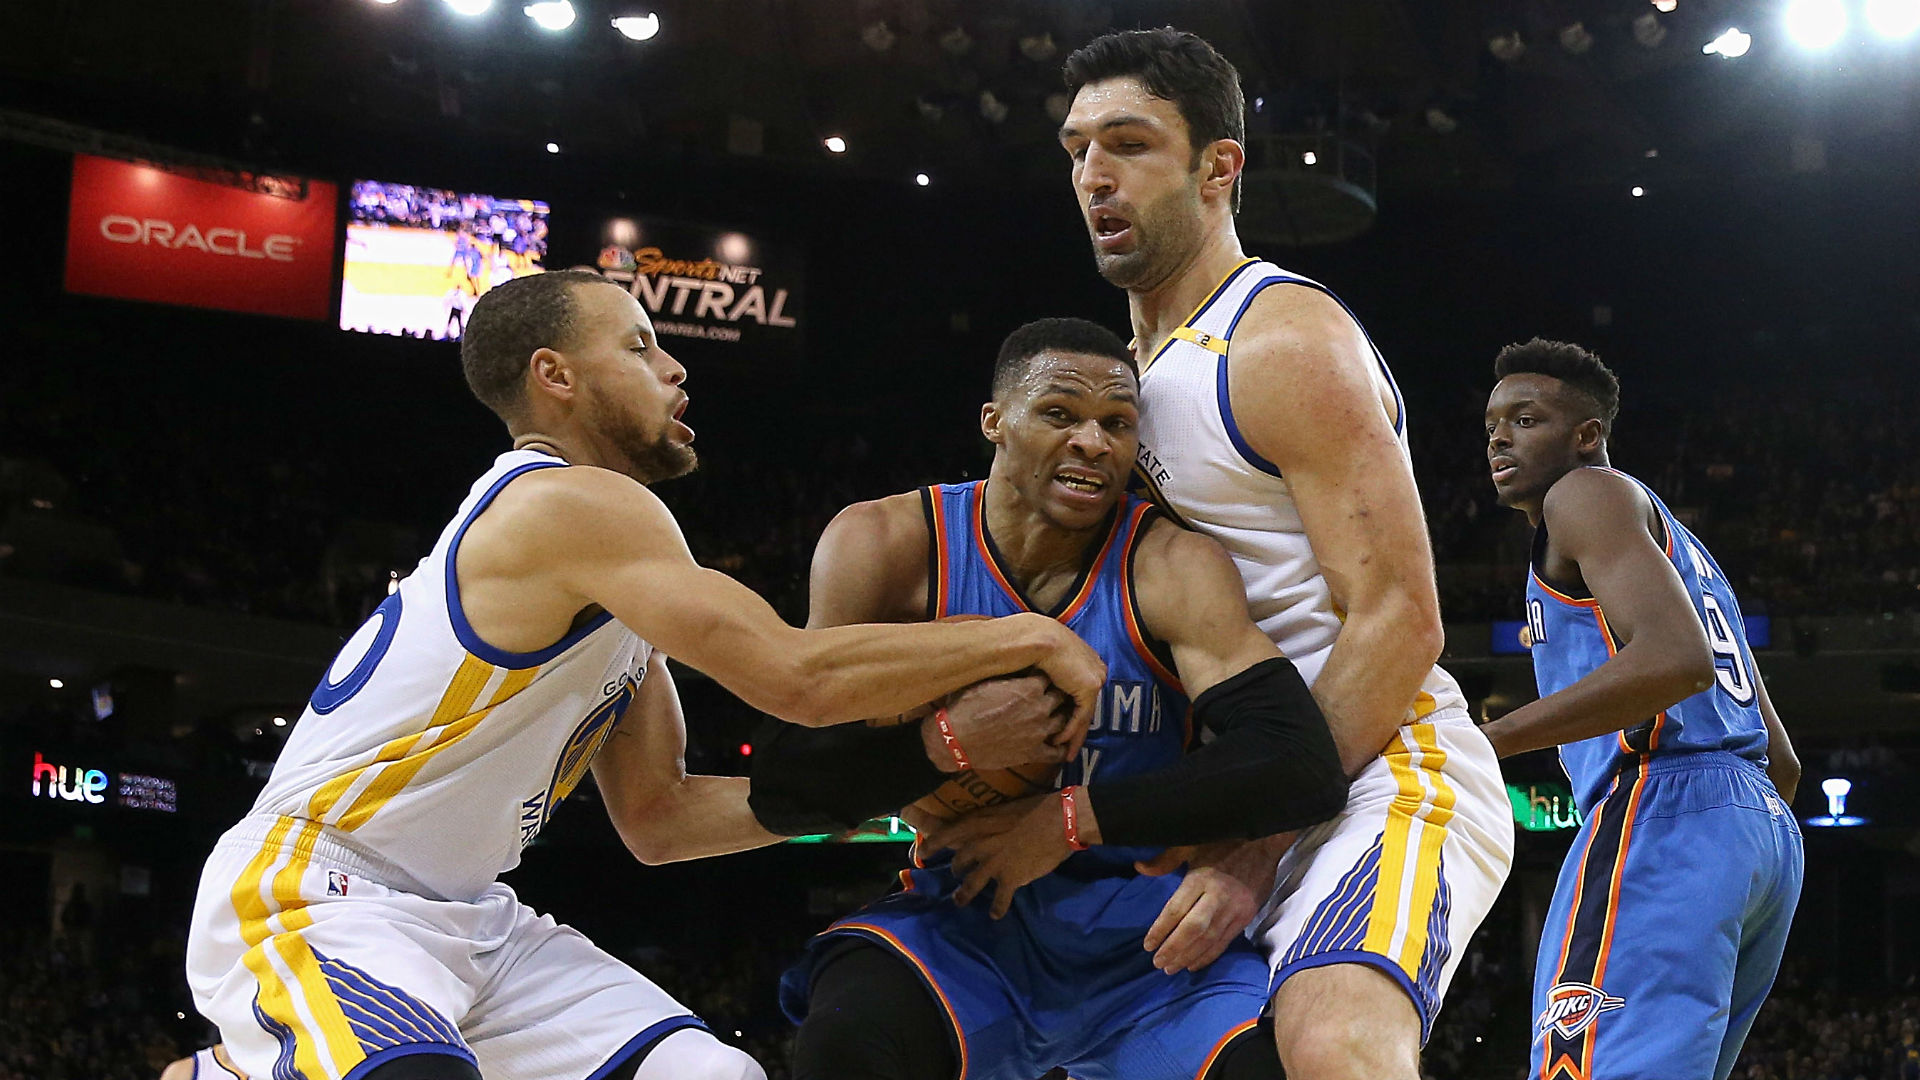 NBA Will Not Discipline Zaza Pachulia for Falling on Russell Westbrook